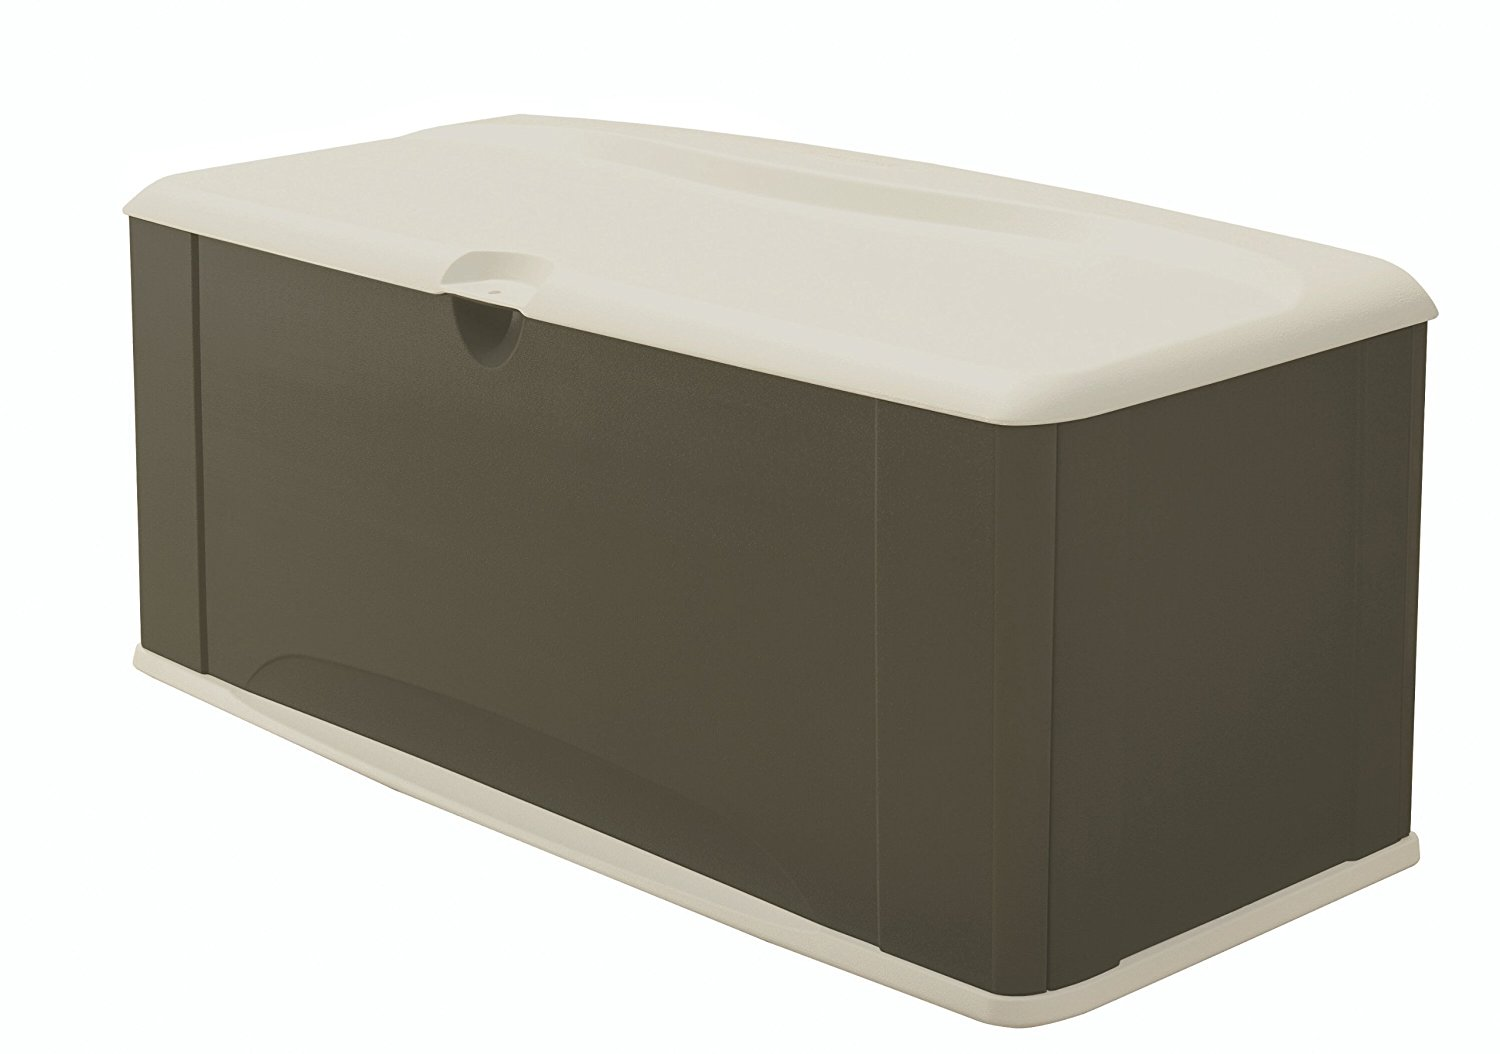 Rubbermaid Deck Box with Seat, Extra Large, 120 Gal., 16 cu. ft., Sandstone (5E39)